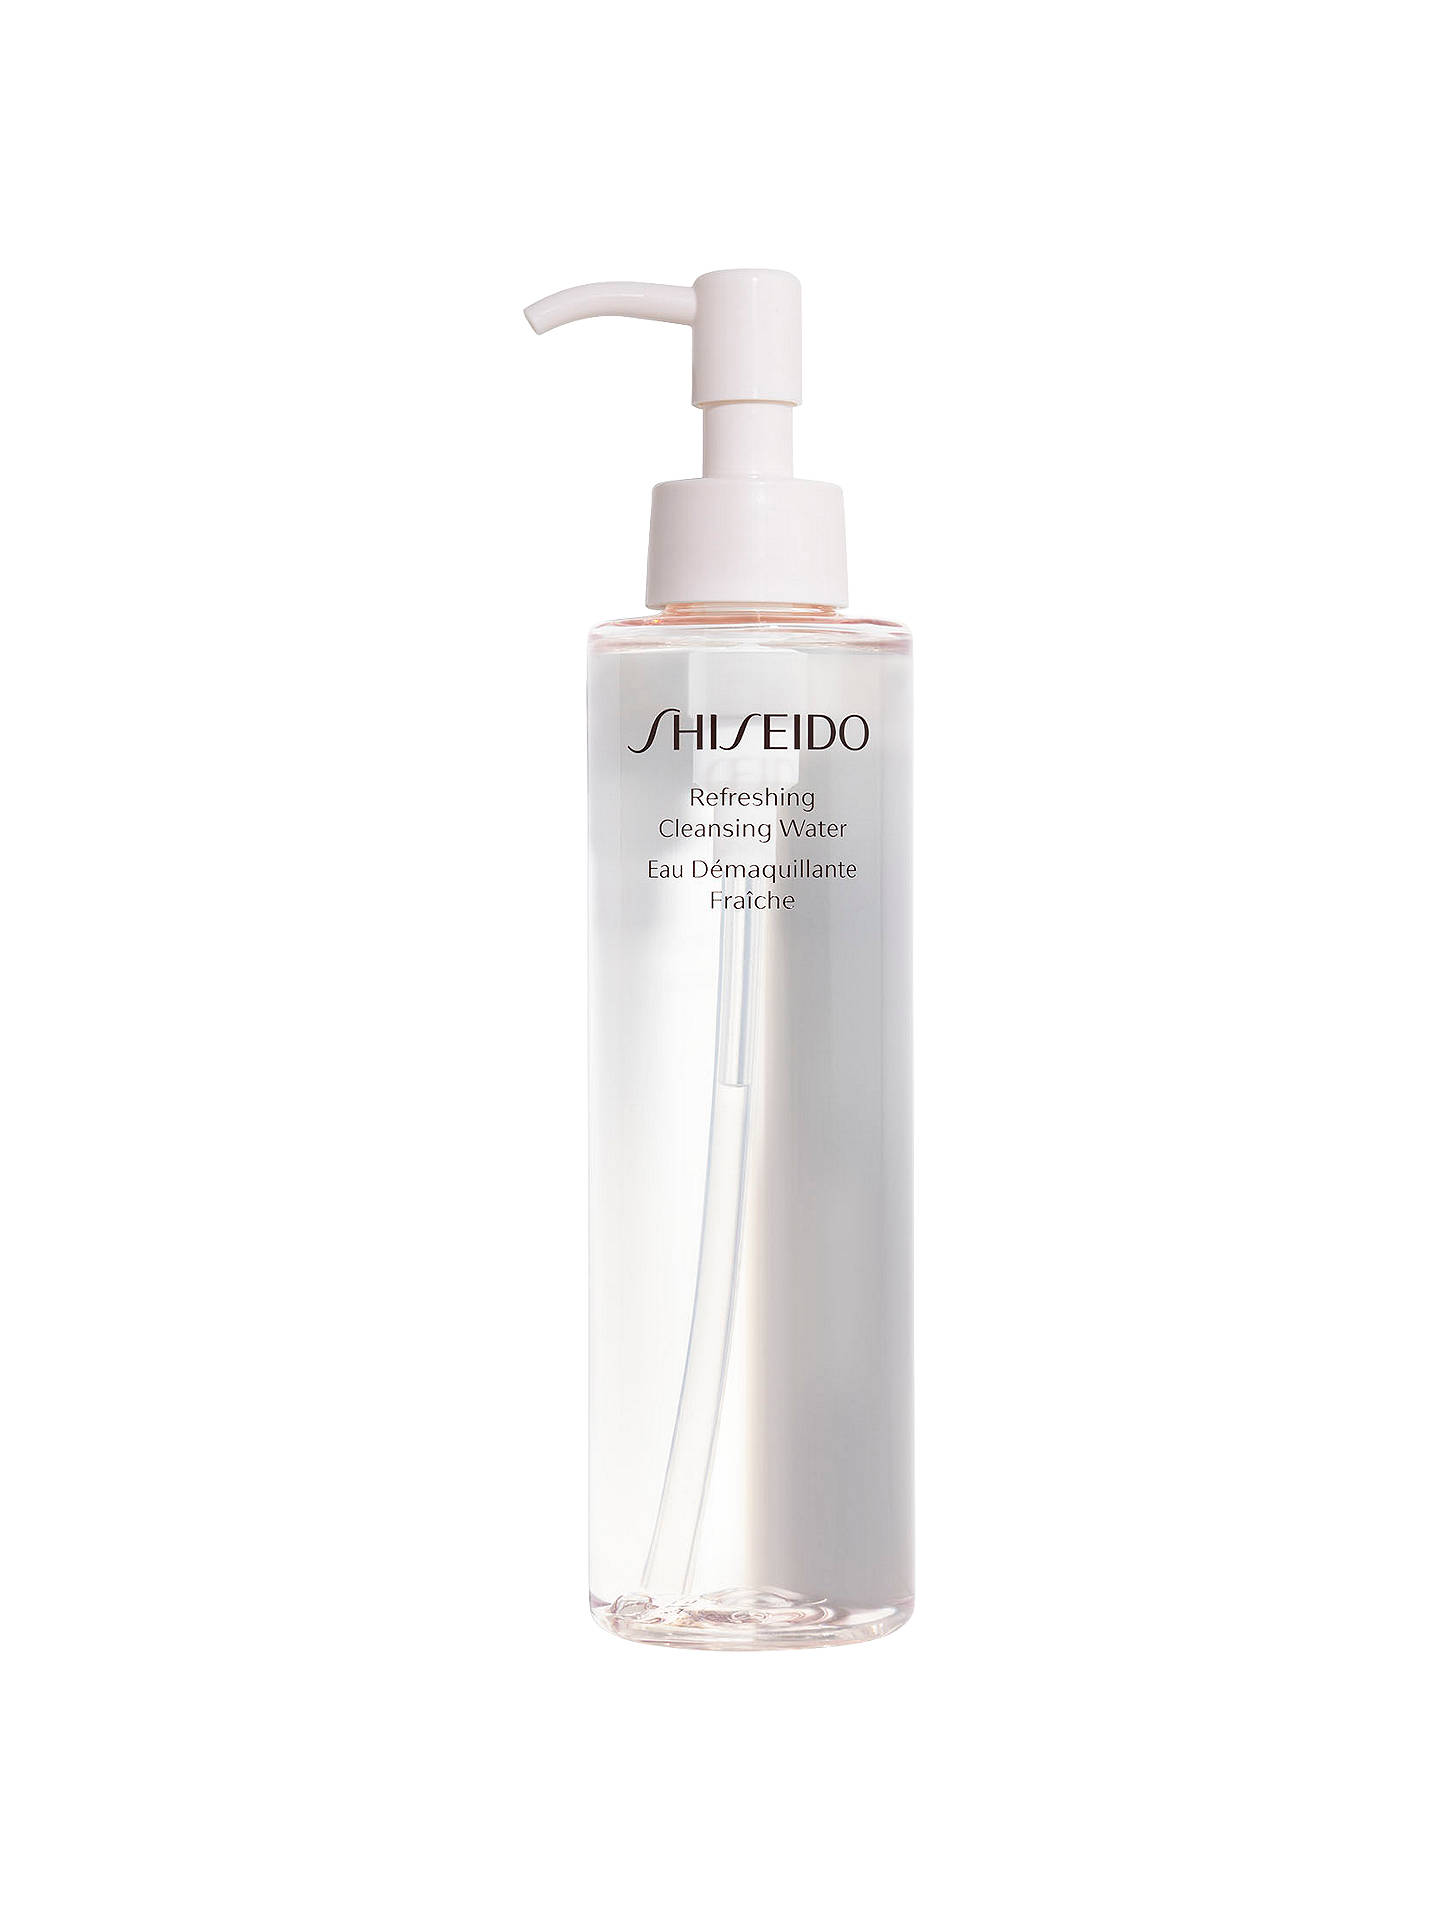 Buy Shiseido Refreshing Cleansing Water, 180ml Online at johnlewis.com